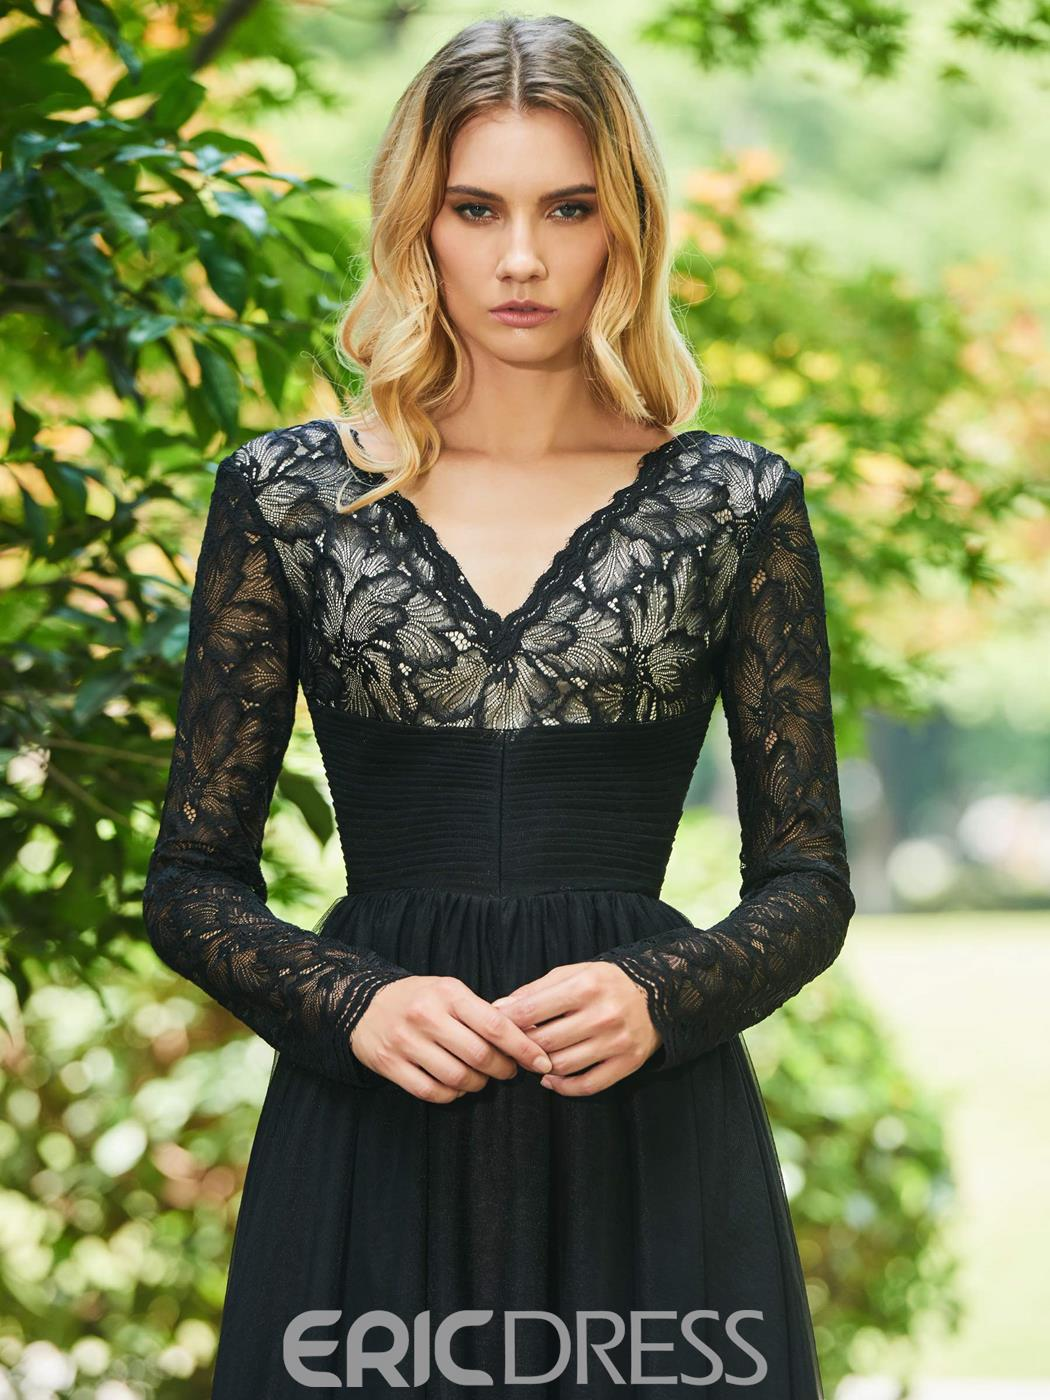 Ericdress Long Sleeve Black Lace Evening Dress